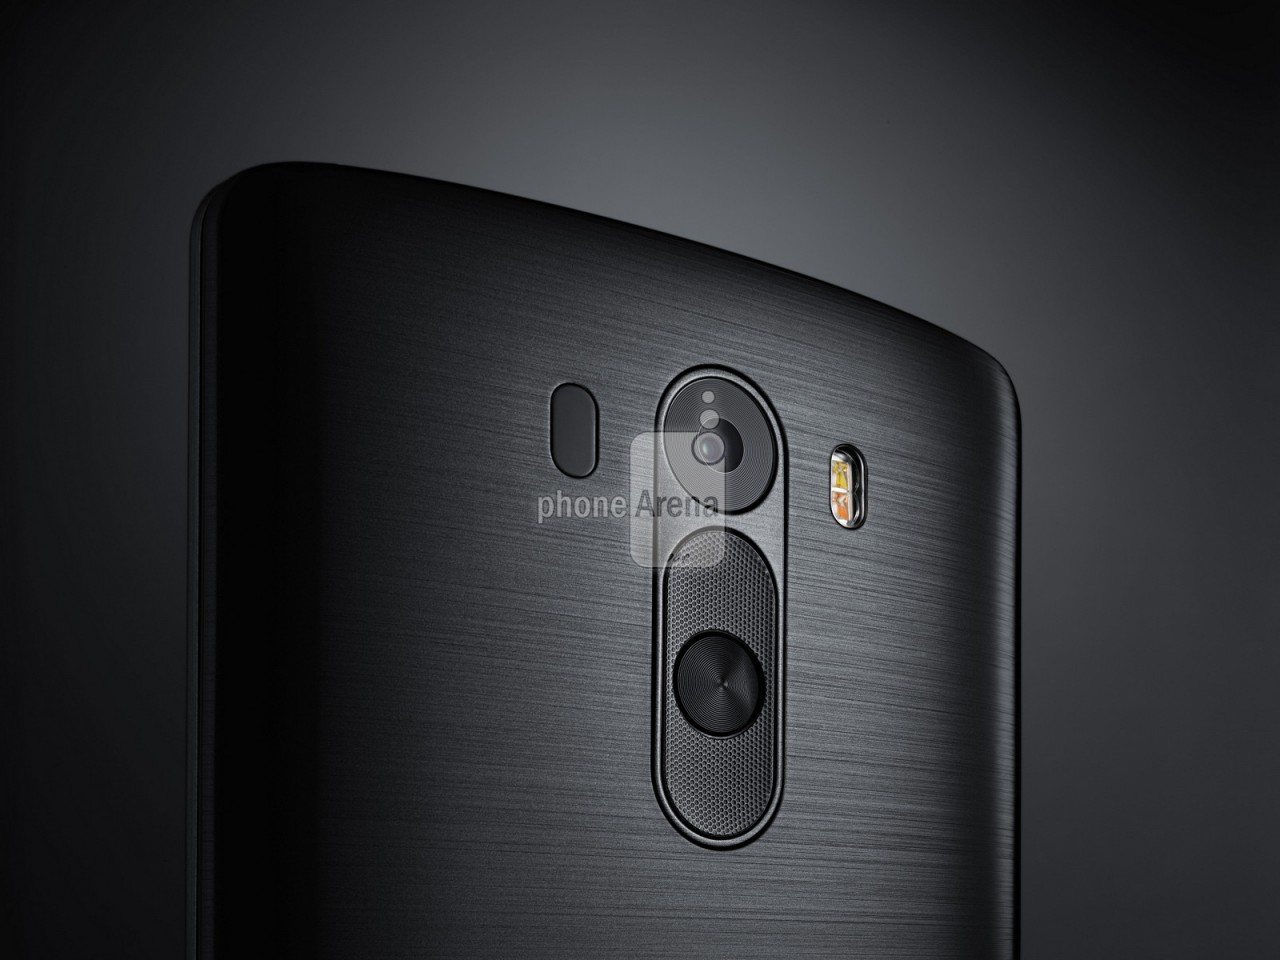 LG-G3-press-renders-appear